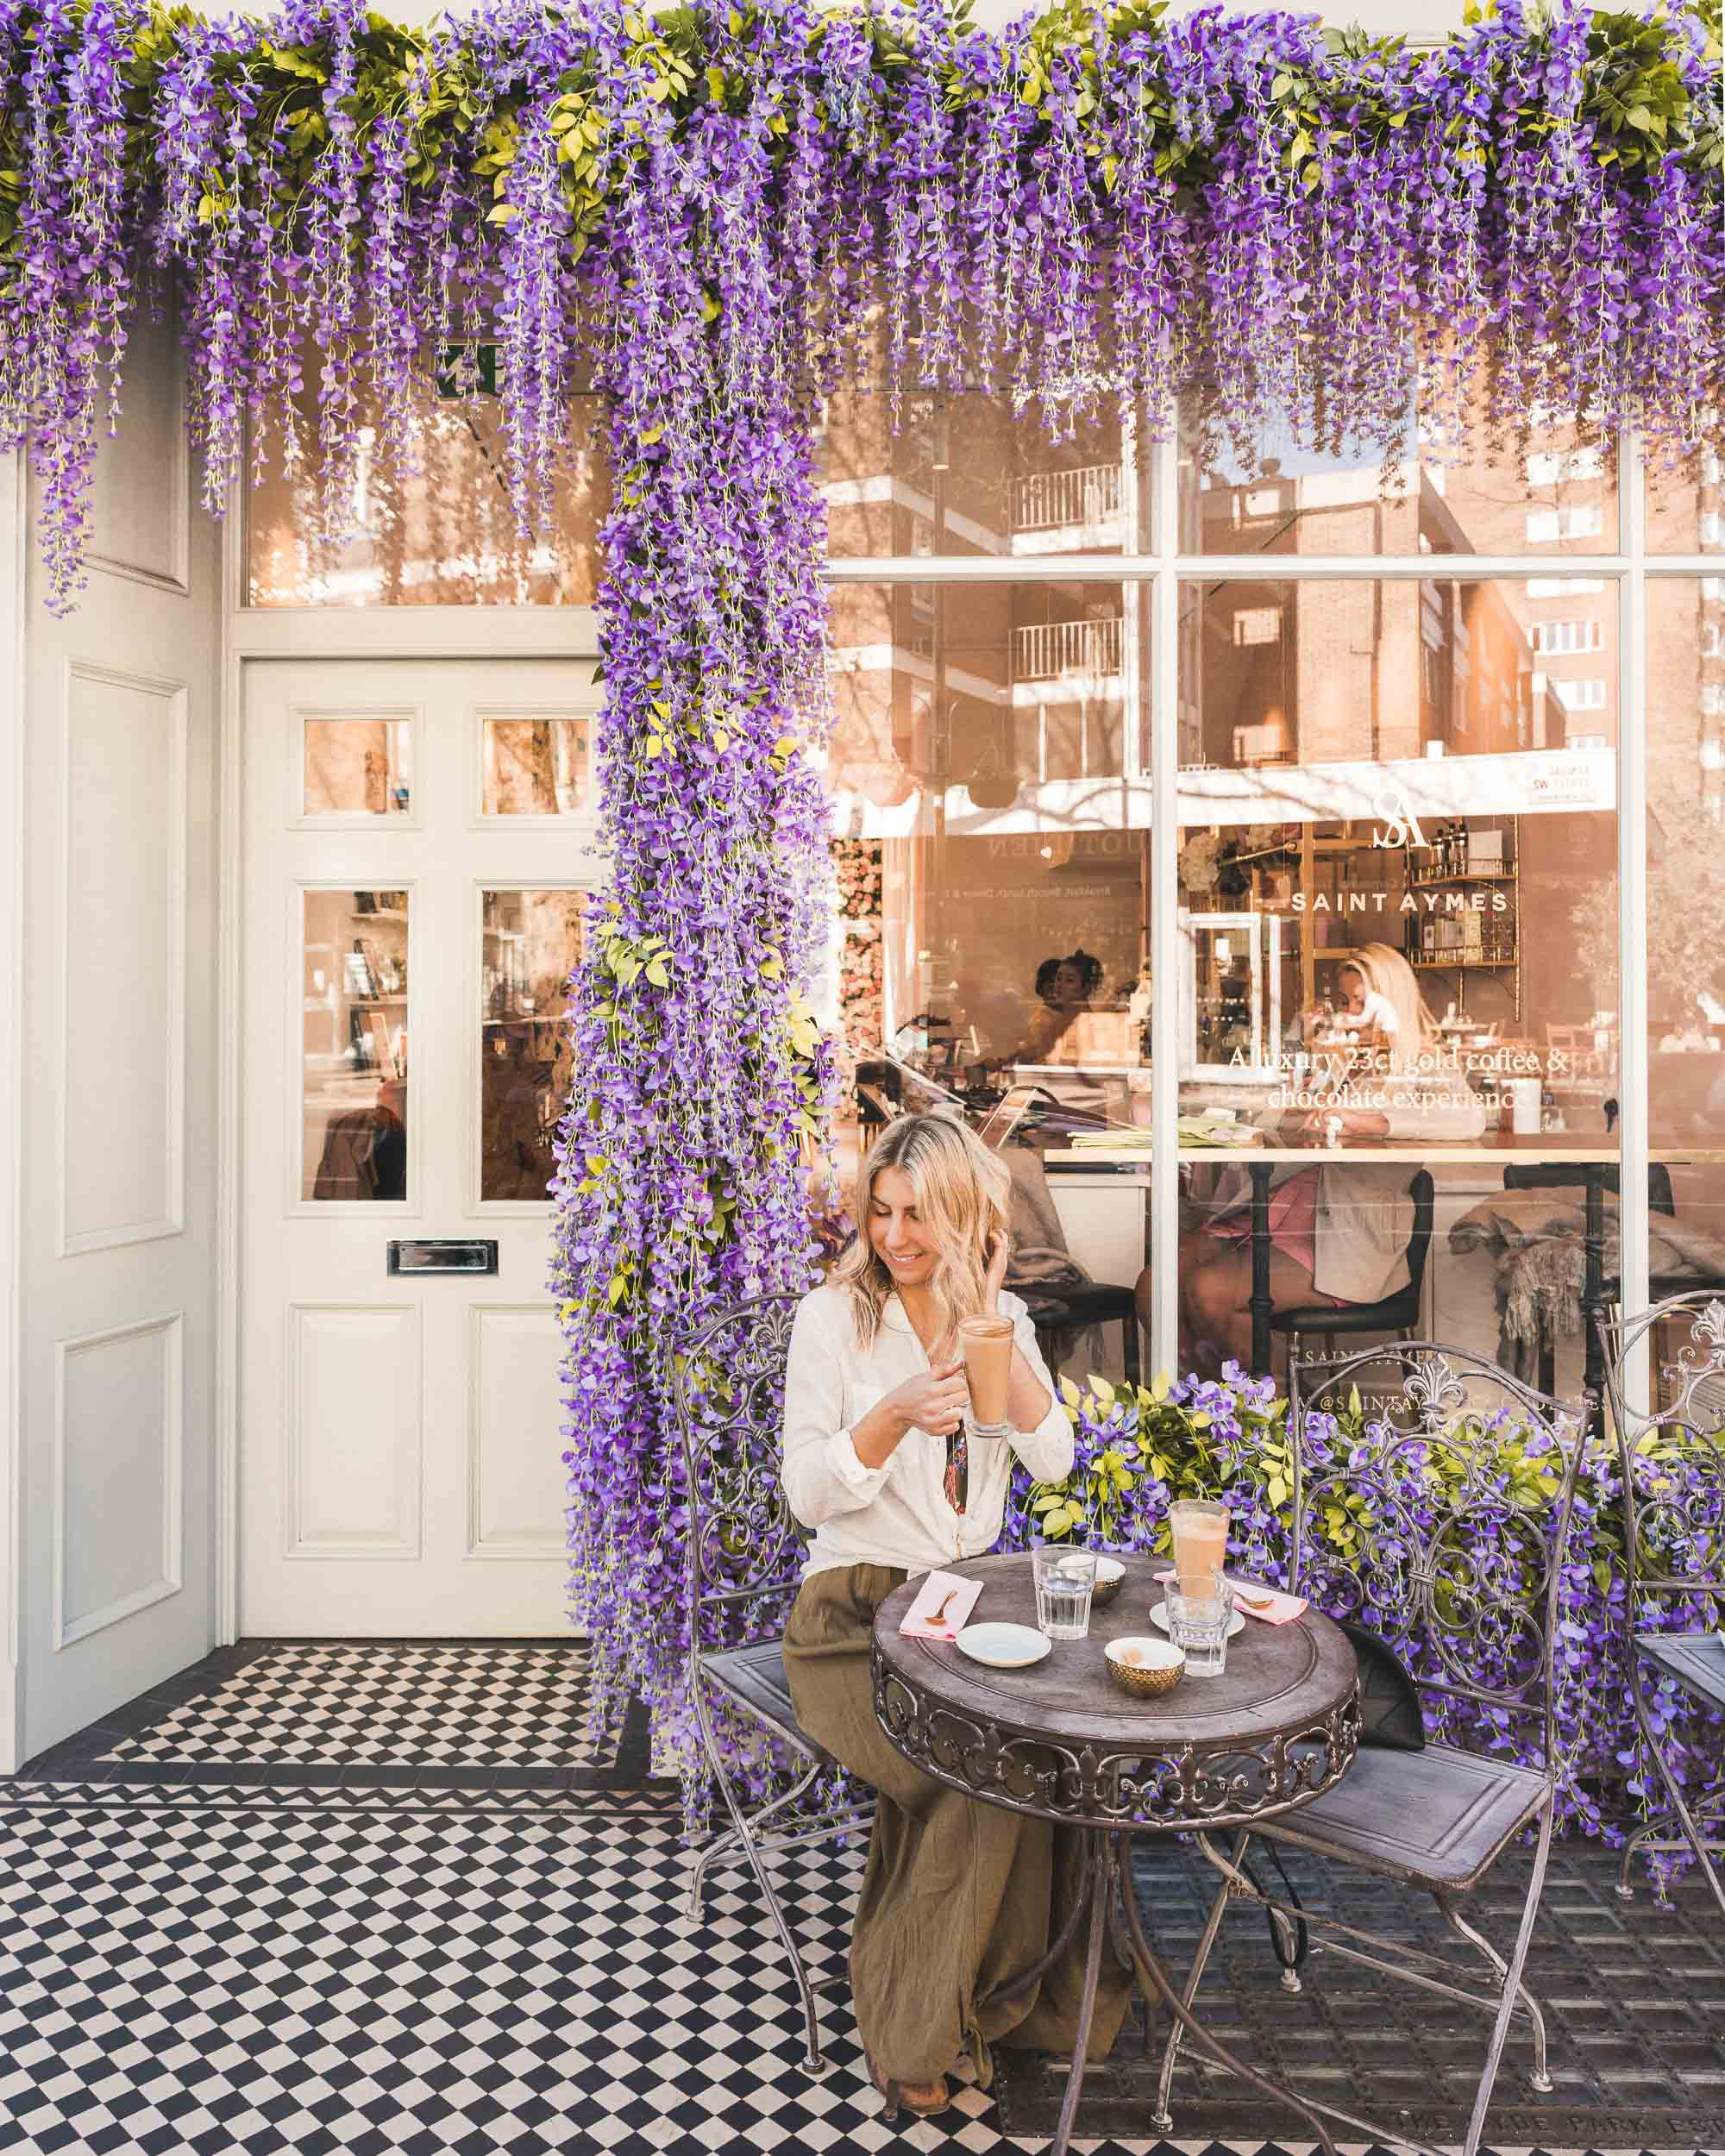 Saint aymes cafe flower front london england travel blogger Selena Taylor of Find Us Lost